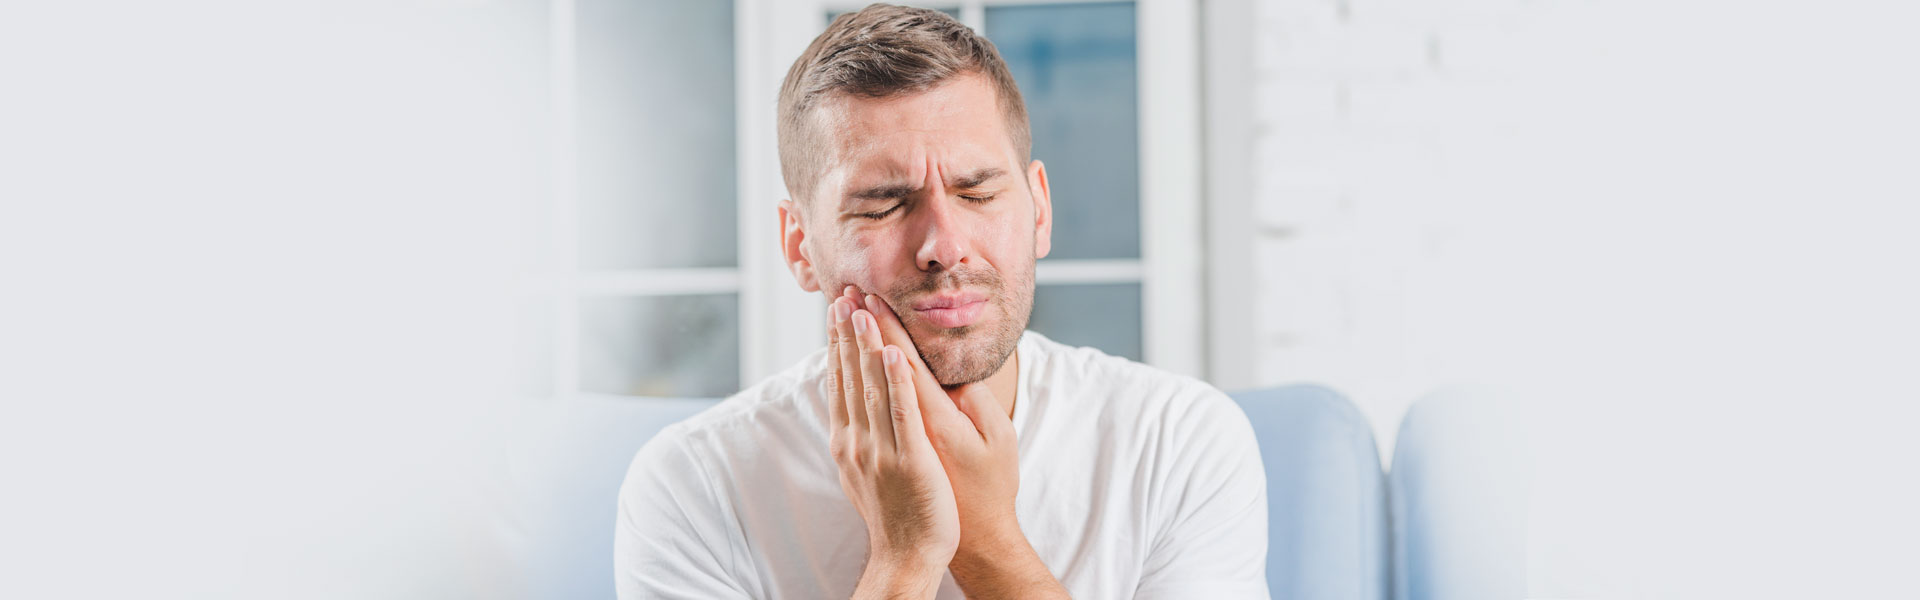 Cracked Tooth Call an Emergency Dentist in Suffern